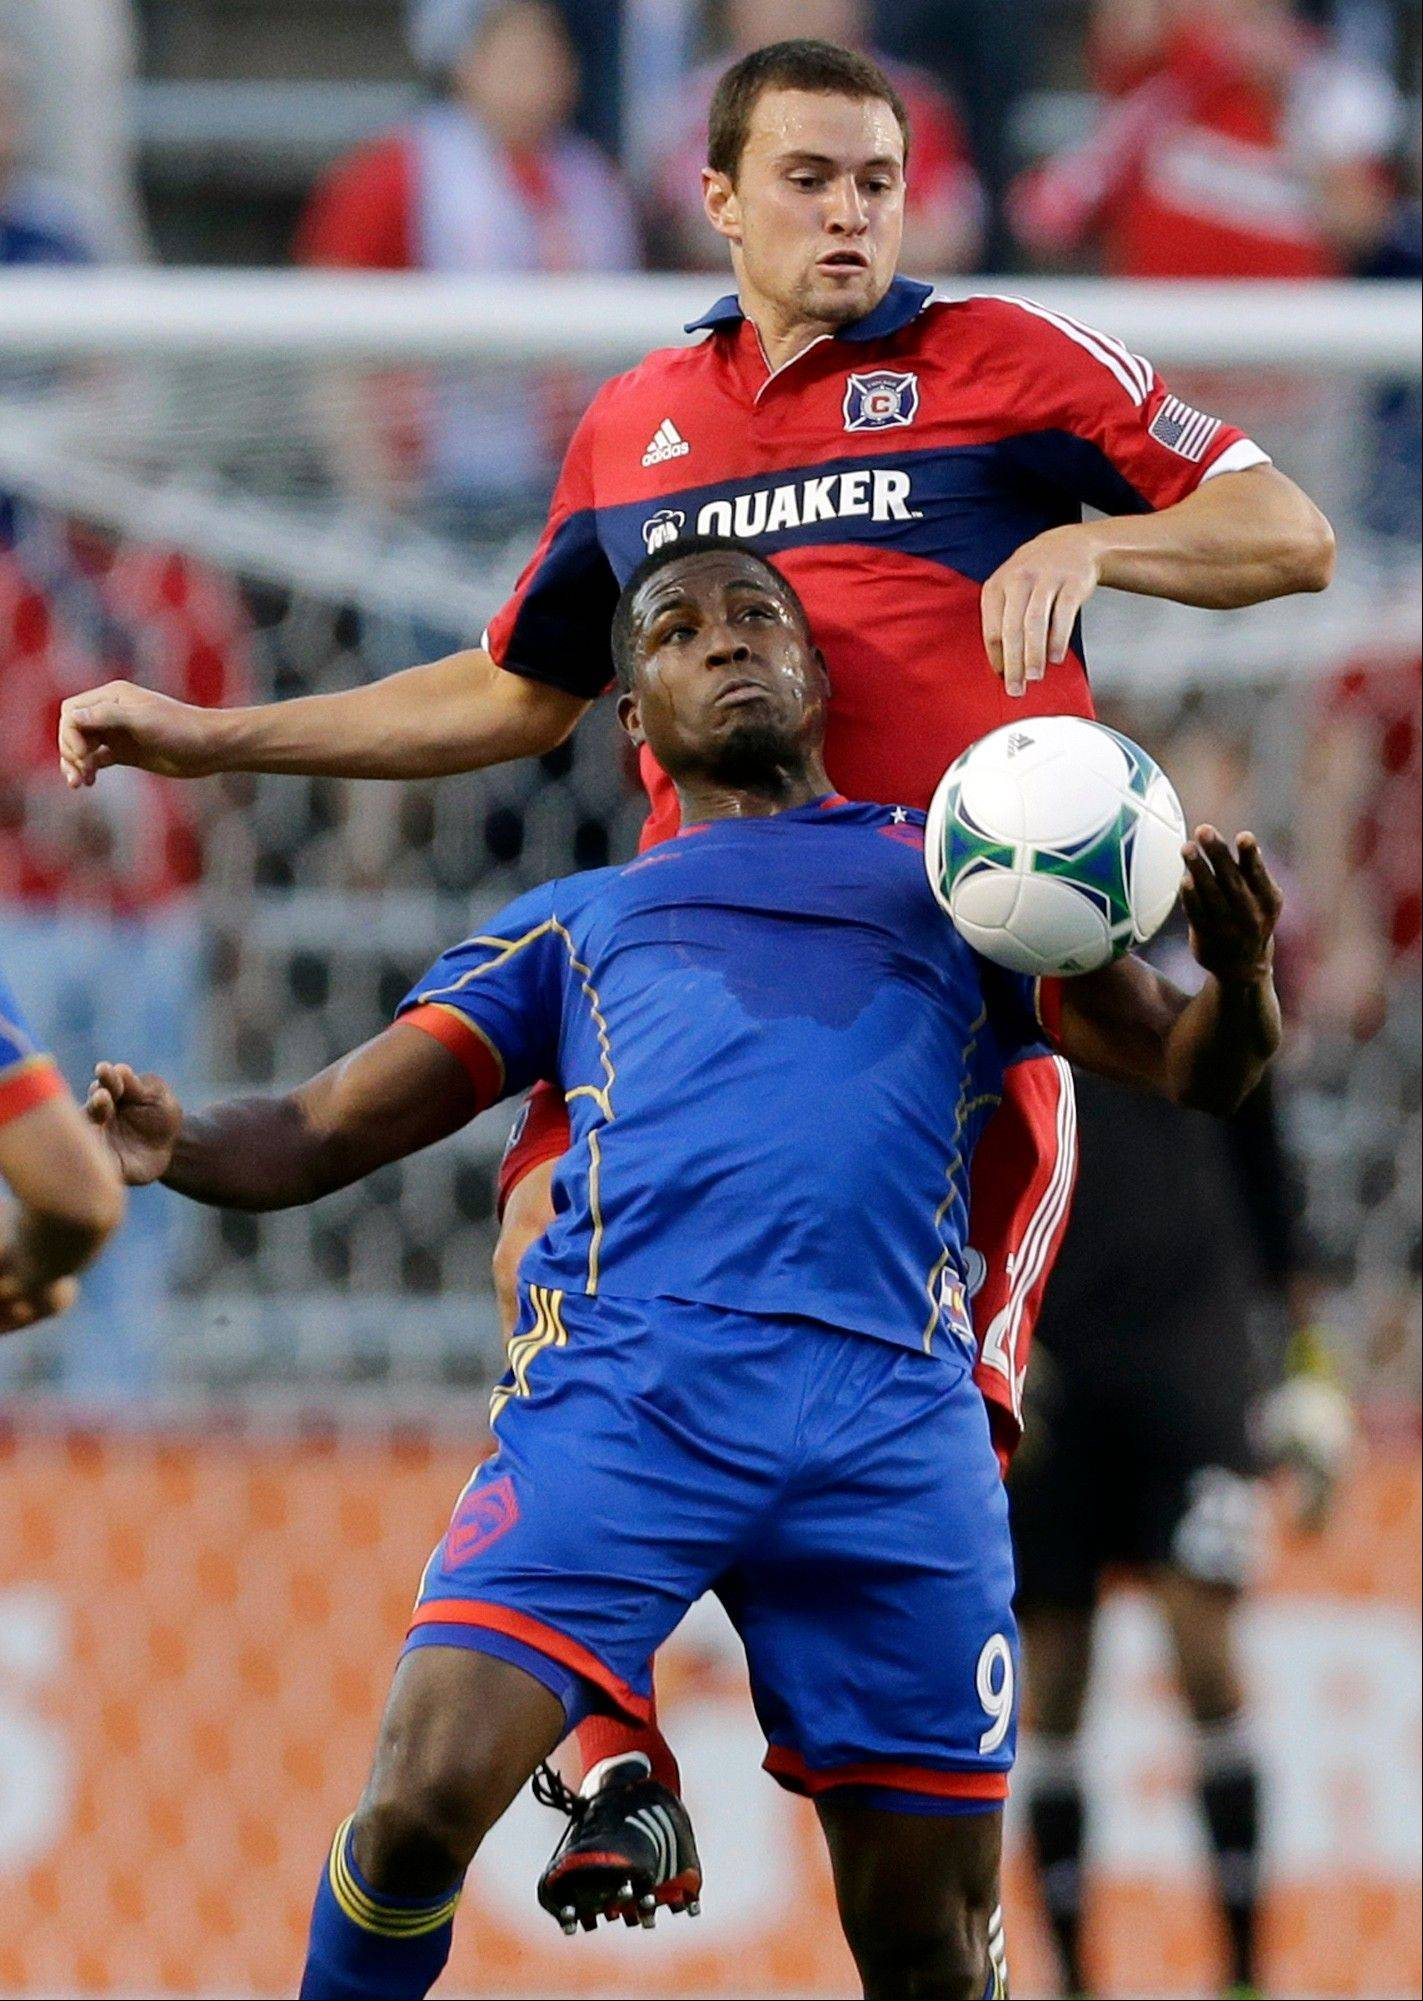 Colorado Rapids forward Edson Buddle, bottom, and Chicago Fire defender Austin Berry battle for the ball during the first half of an MLS soccer match Wednesday night.